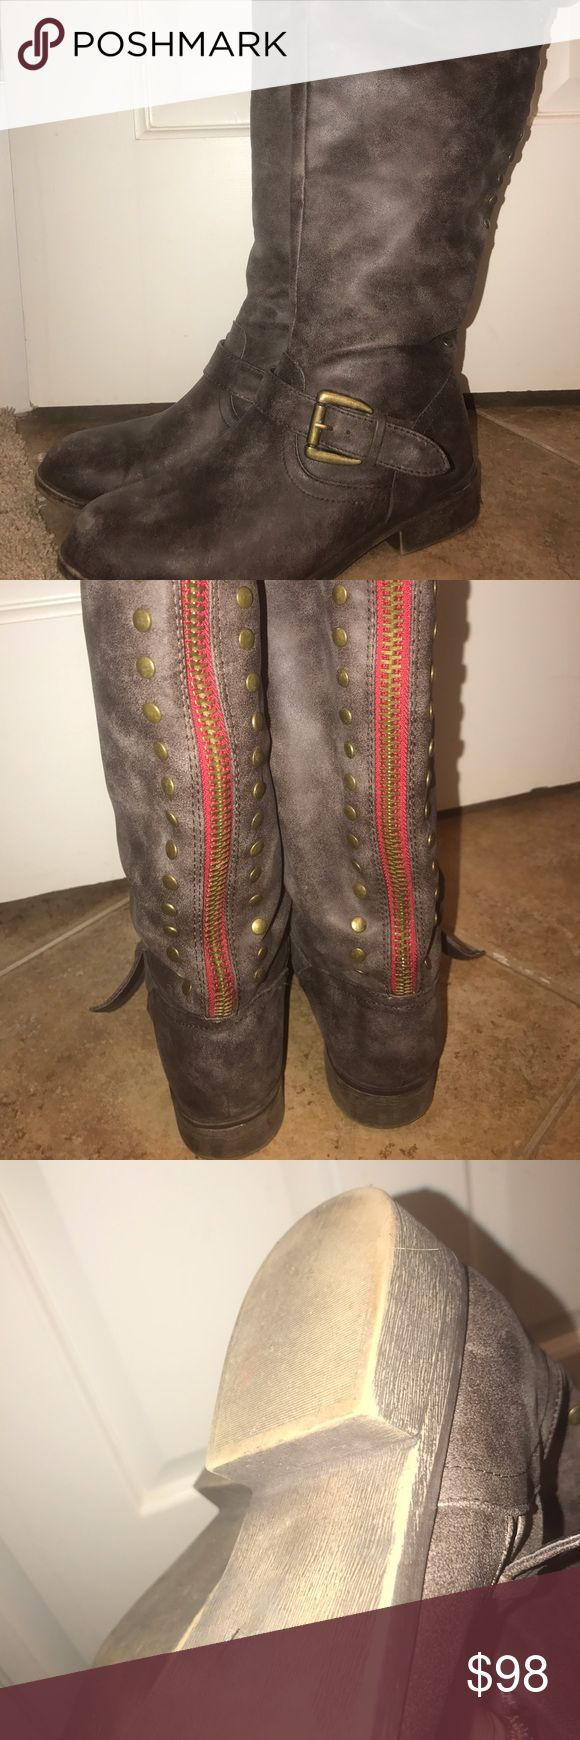 Steve Madden Boots Madden Girl by Steve Madden Cactus boots , hardly worn, very faint wear on toe of boot but hardly noticeable. Distressed brown, Super super cute 💕 Steve Madden Shoes Winter & Rain Boots